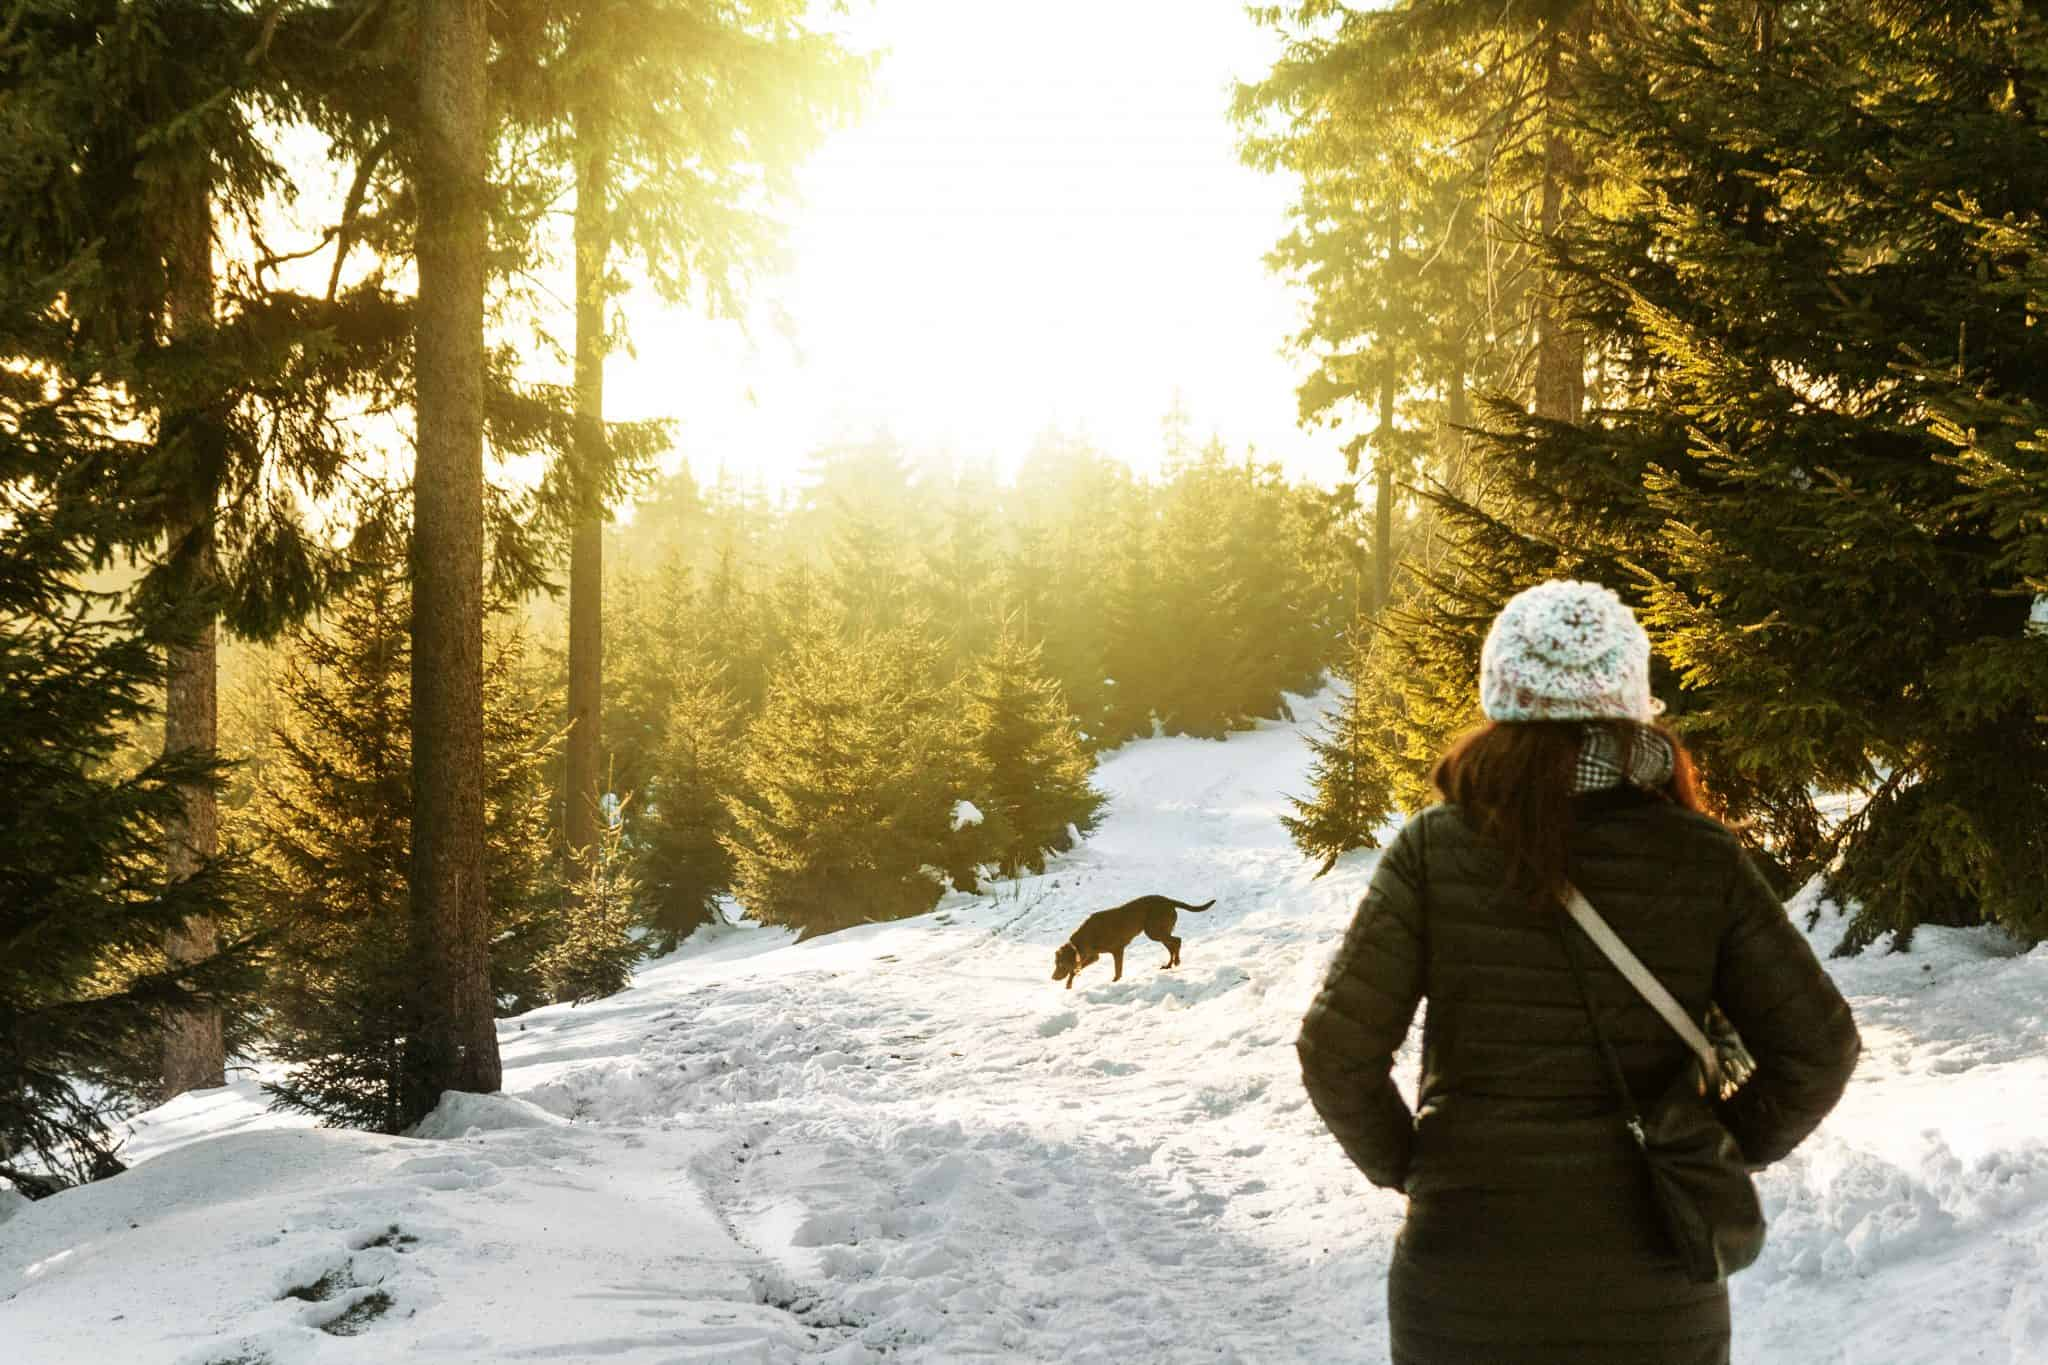 Woman and dog walking through a snowy forest